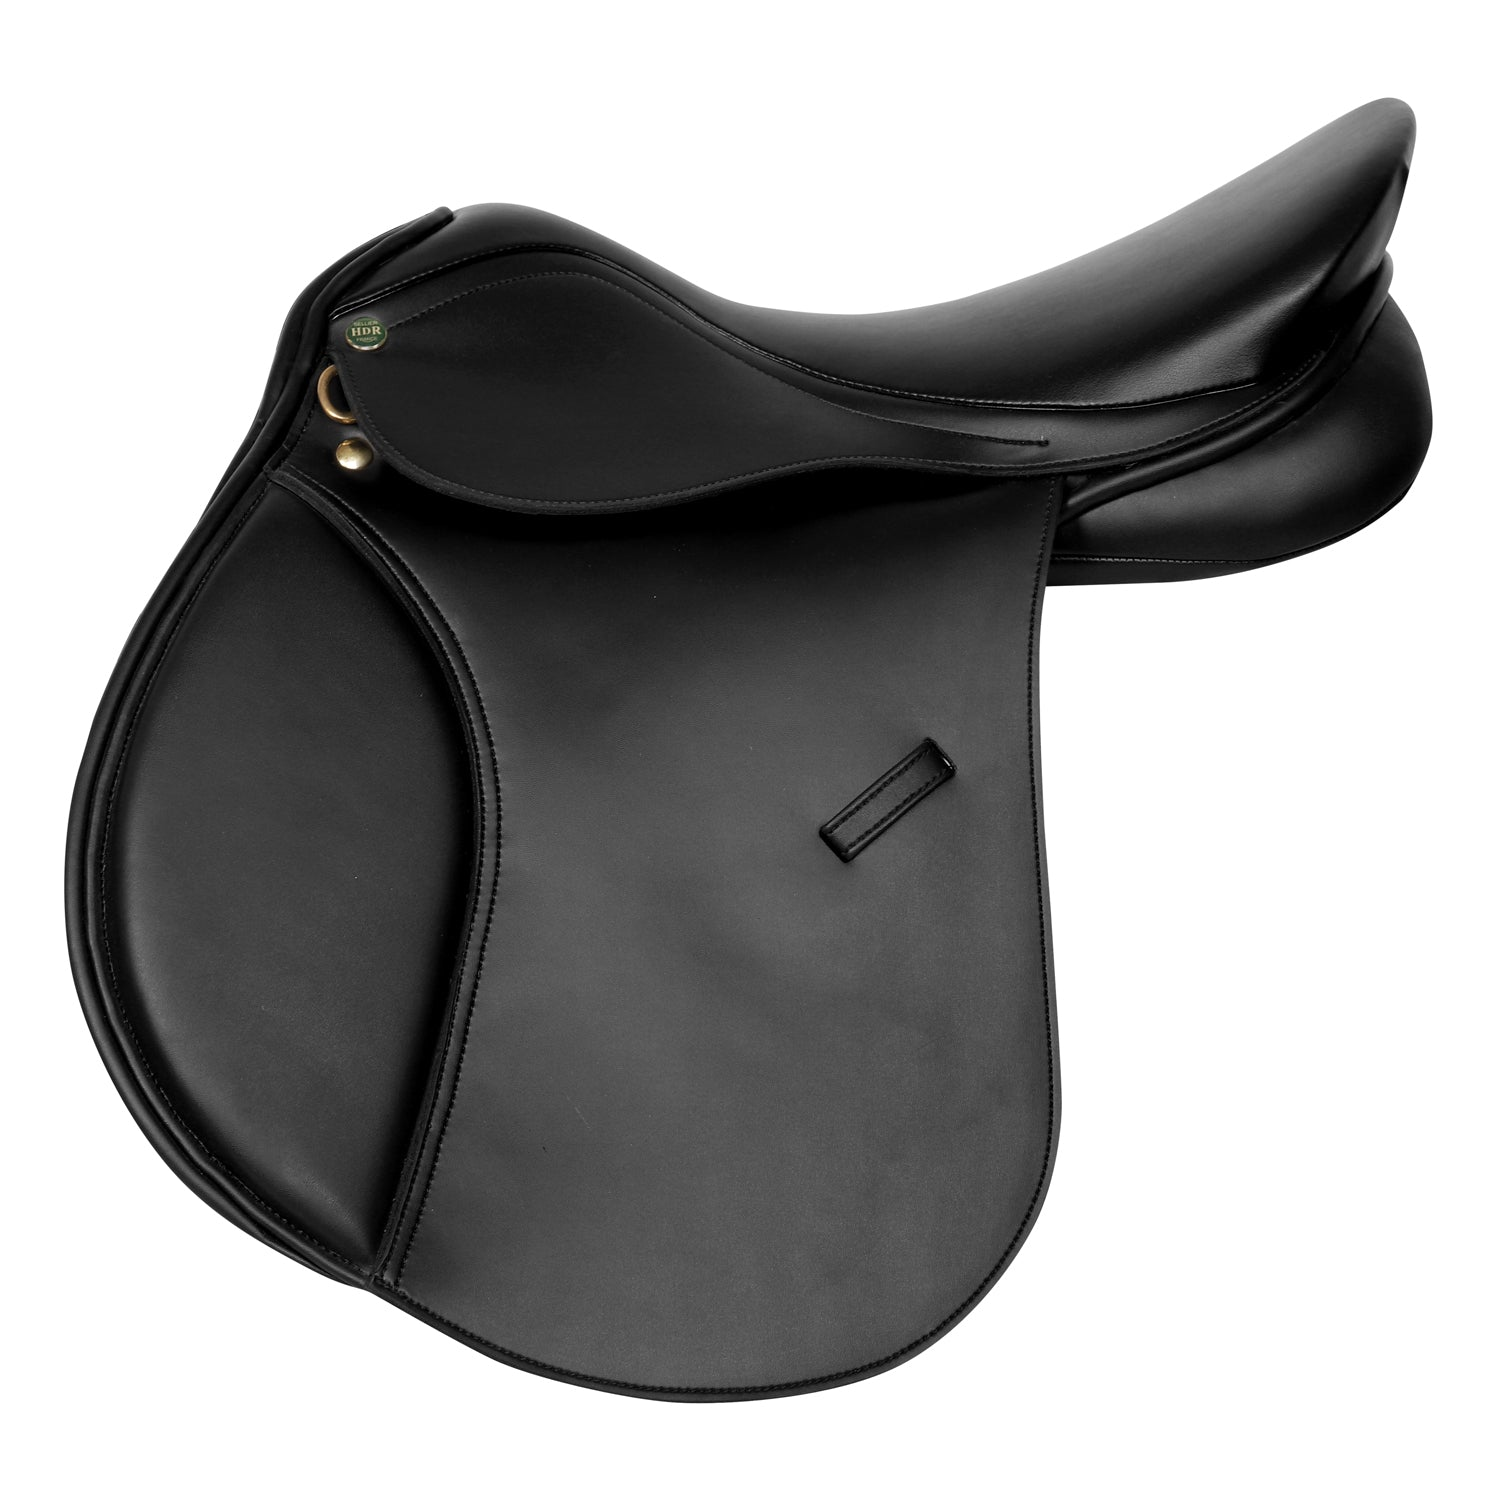 Vegan-X All Purpose Saddle - Vegan-X - Breeches.com